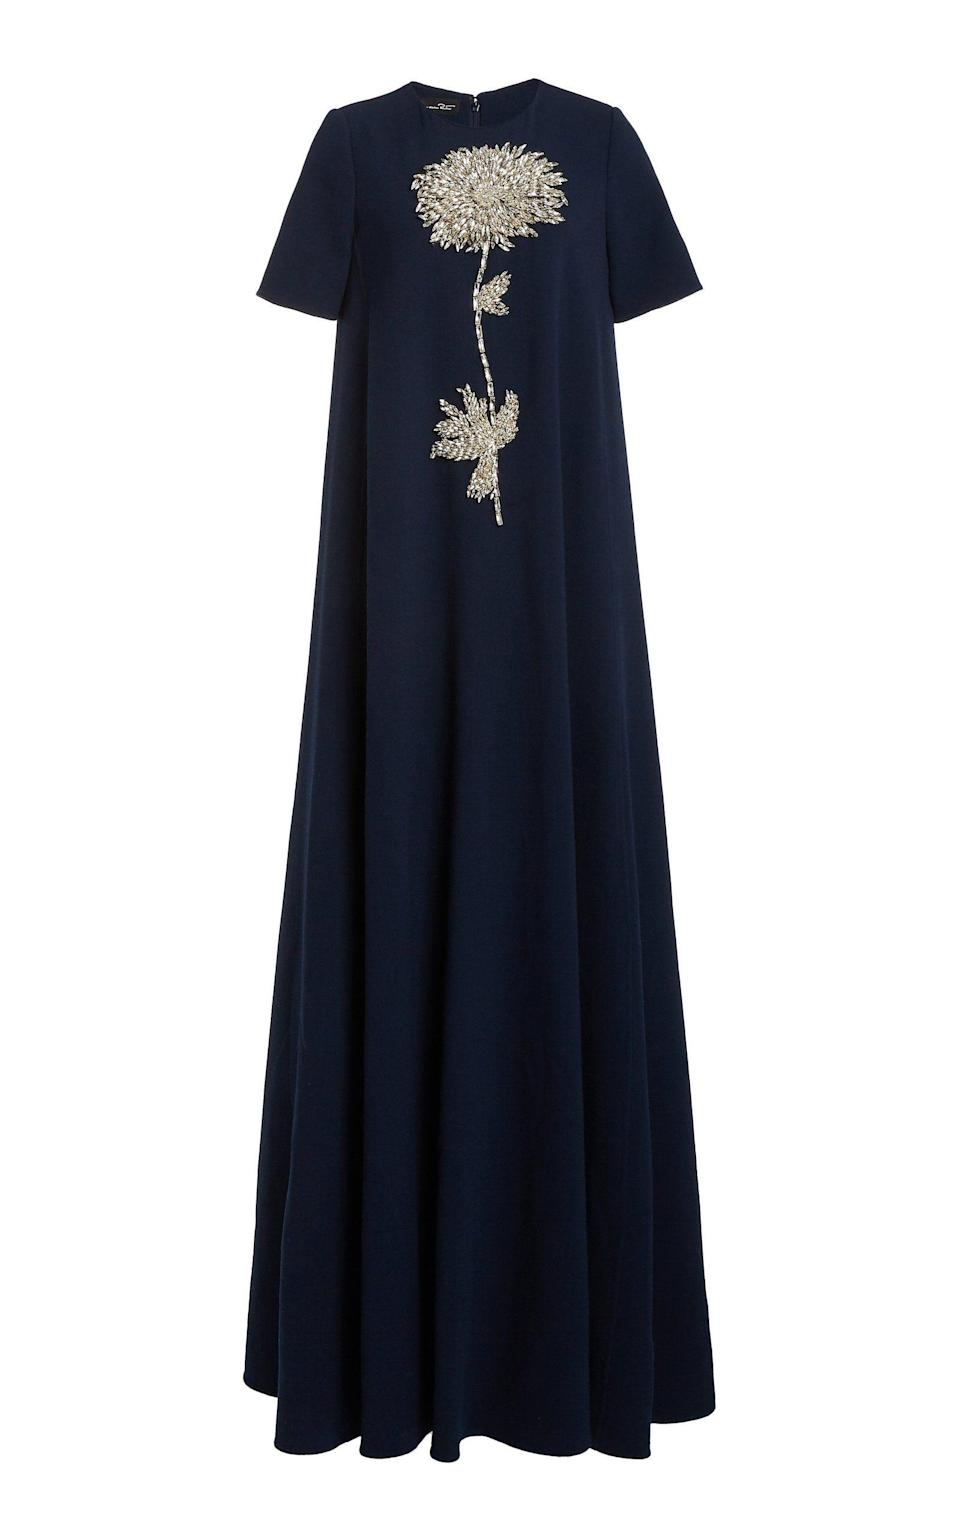 """<p><strong>Oscar de la Renta</strong></p><p>modaoperandi.com</p><p><strong>$4990.00</strong></p><p><a href=""""https://go.redirectingat.com?id=74968X1596630&url=https%3A%2F%2Fwww.modaoperandi.com%2Fwomen%2Fp%2Foscar-de-la-renta%2Ffloral-embroidered-wool-blend-gown%2F479535&sref=https%3A%2F%2Fwww.harpersbazaar.com%2Fwedding%2Fbridal-fashion%2Fg36750122%2Fbest-mother-of-the-groom-dresses%2F"""" rel=""""nofollow noopener"""" target=""""_blank"""" data-ylk=""""slk:SHOP NOW"""" class=""""link rapid-noclick-resp"""">SHOP NOW</a></p><p>A singular, statement embellishment is undoubtedly more impactful and graphic when set on a deep, rich hue rather than a lighter tone. </p>"""